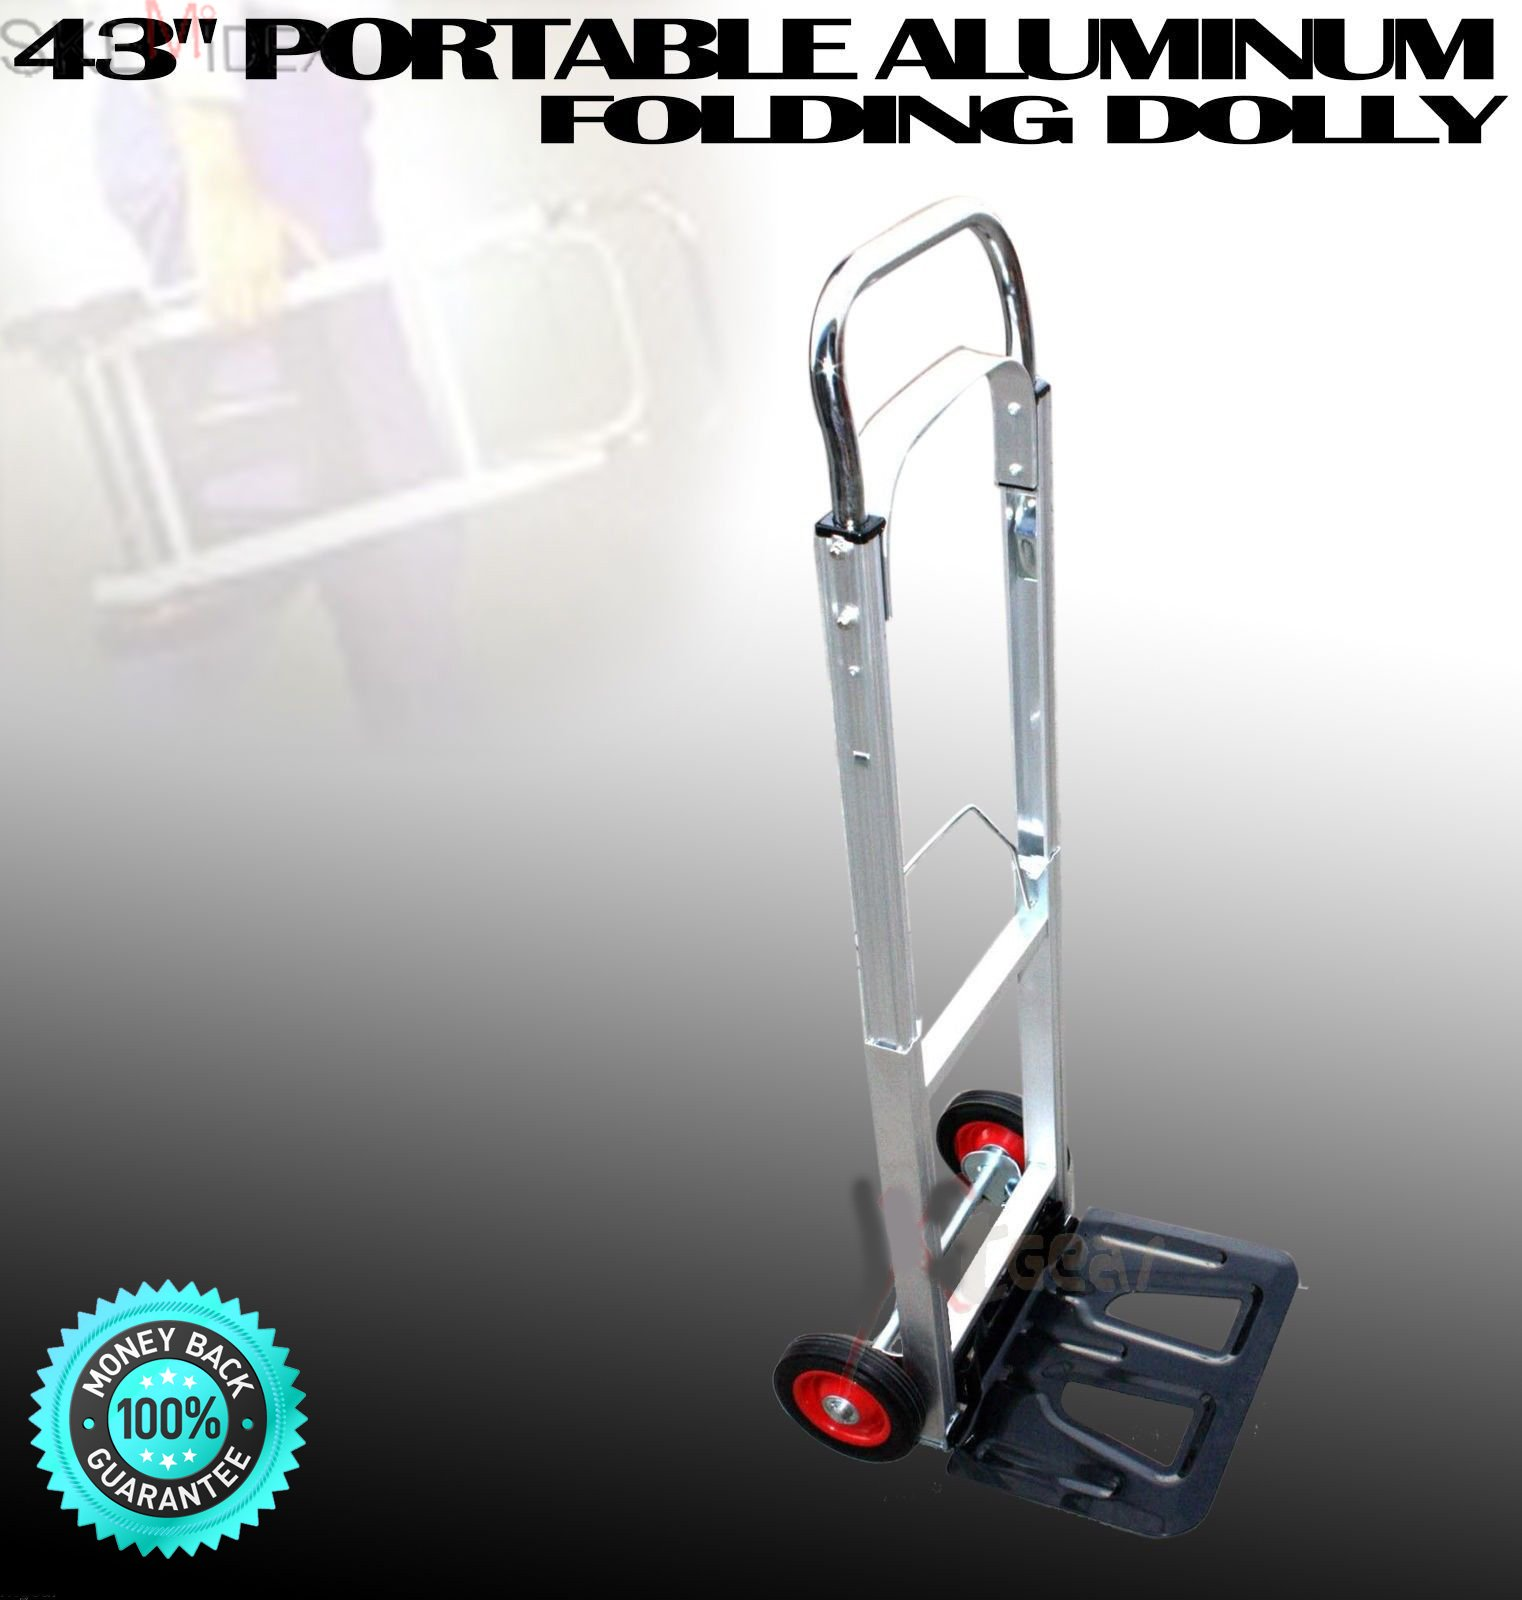 SKEMiDEX---200LBS PORTABLE ALUMINUM 43'' FOLDING DOLLY MOVING HAND CART TRUCKS HOLDS. Easily Folds Compact for storage. Light Weight for Travel, Office, Out Door, Home, and Shopping only